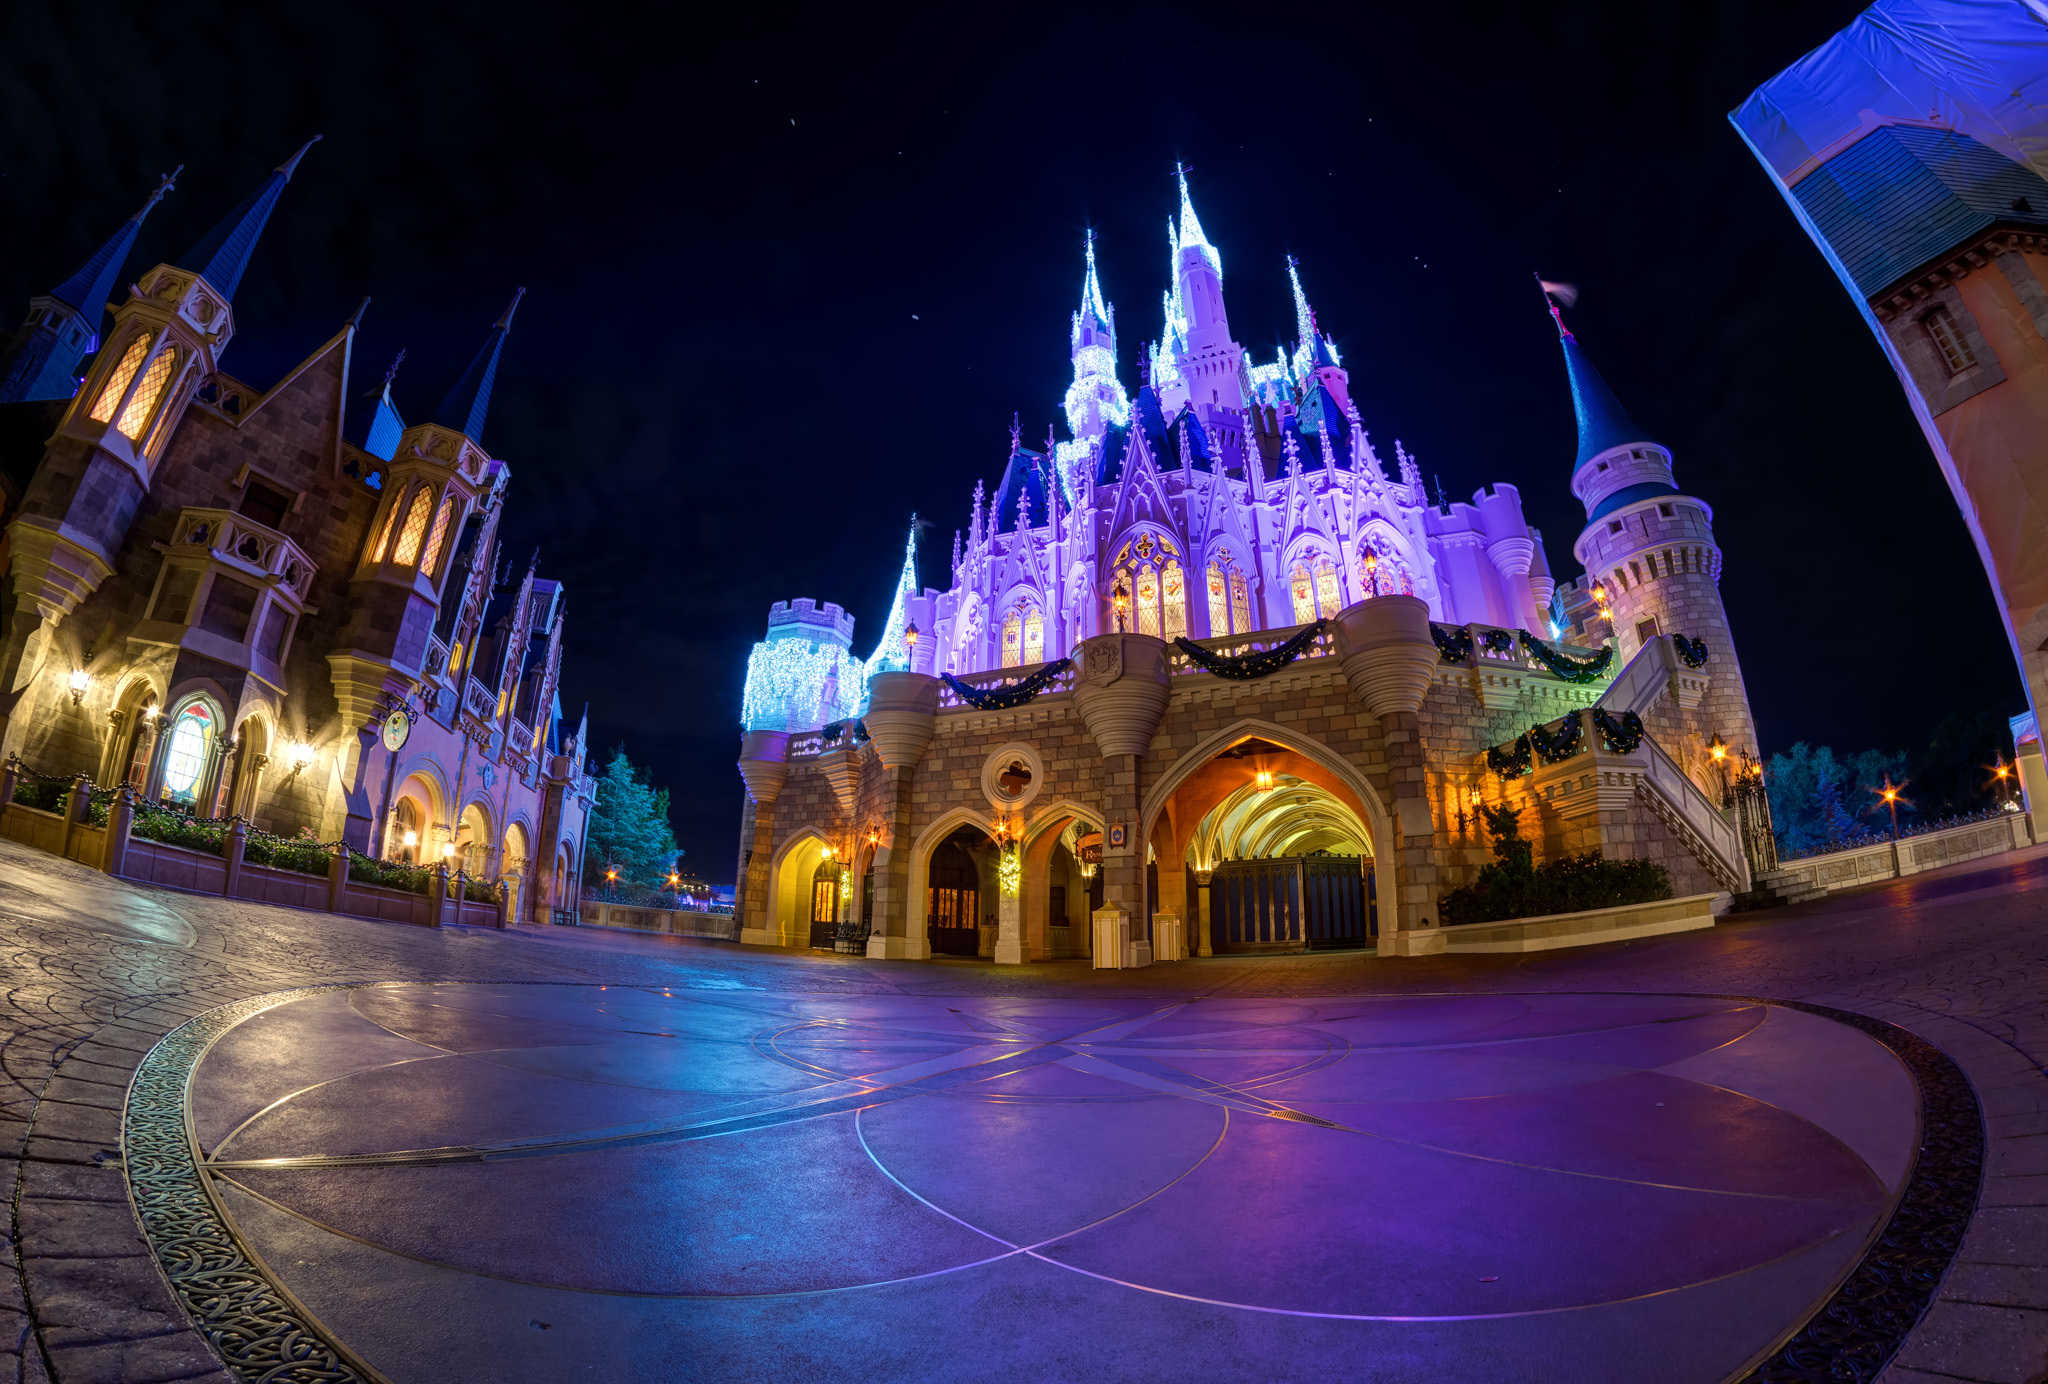 6 beautiful photos of Cinderella Castle at Disney World